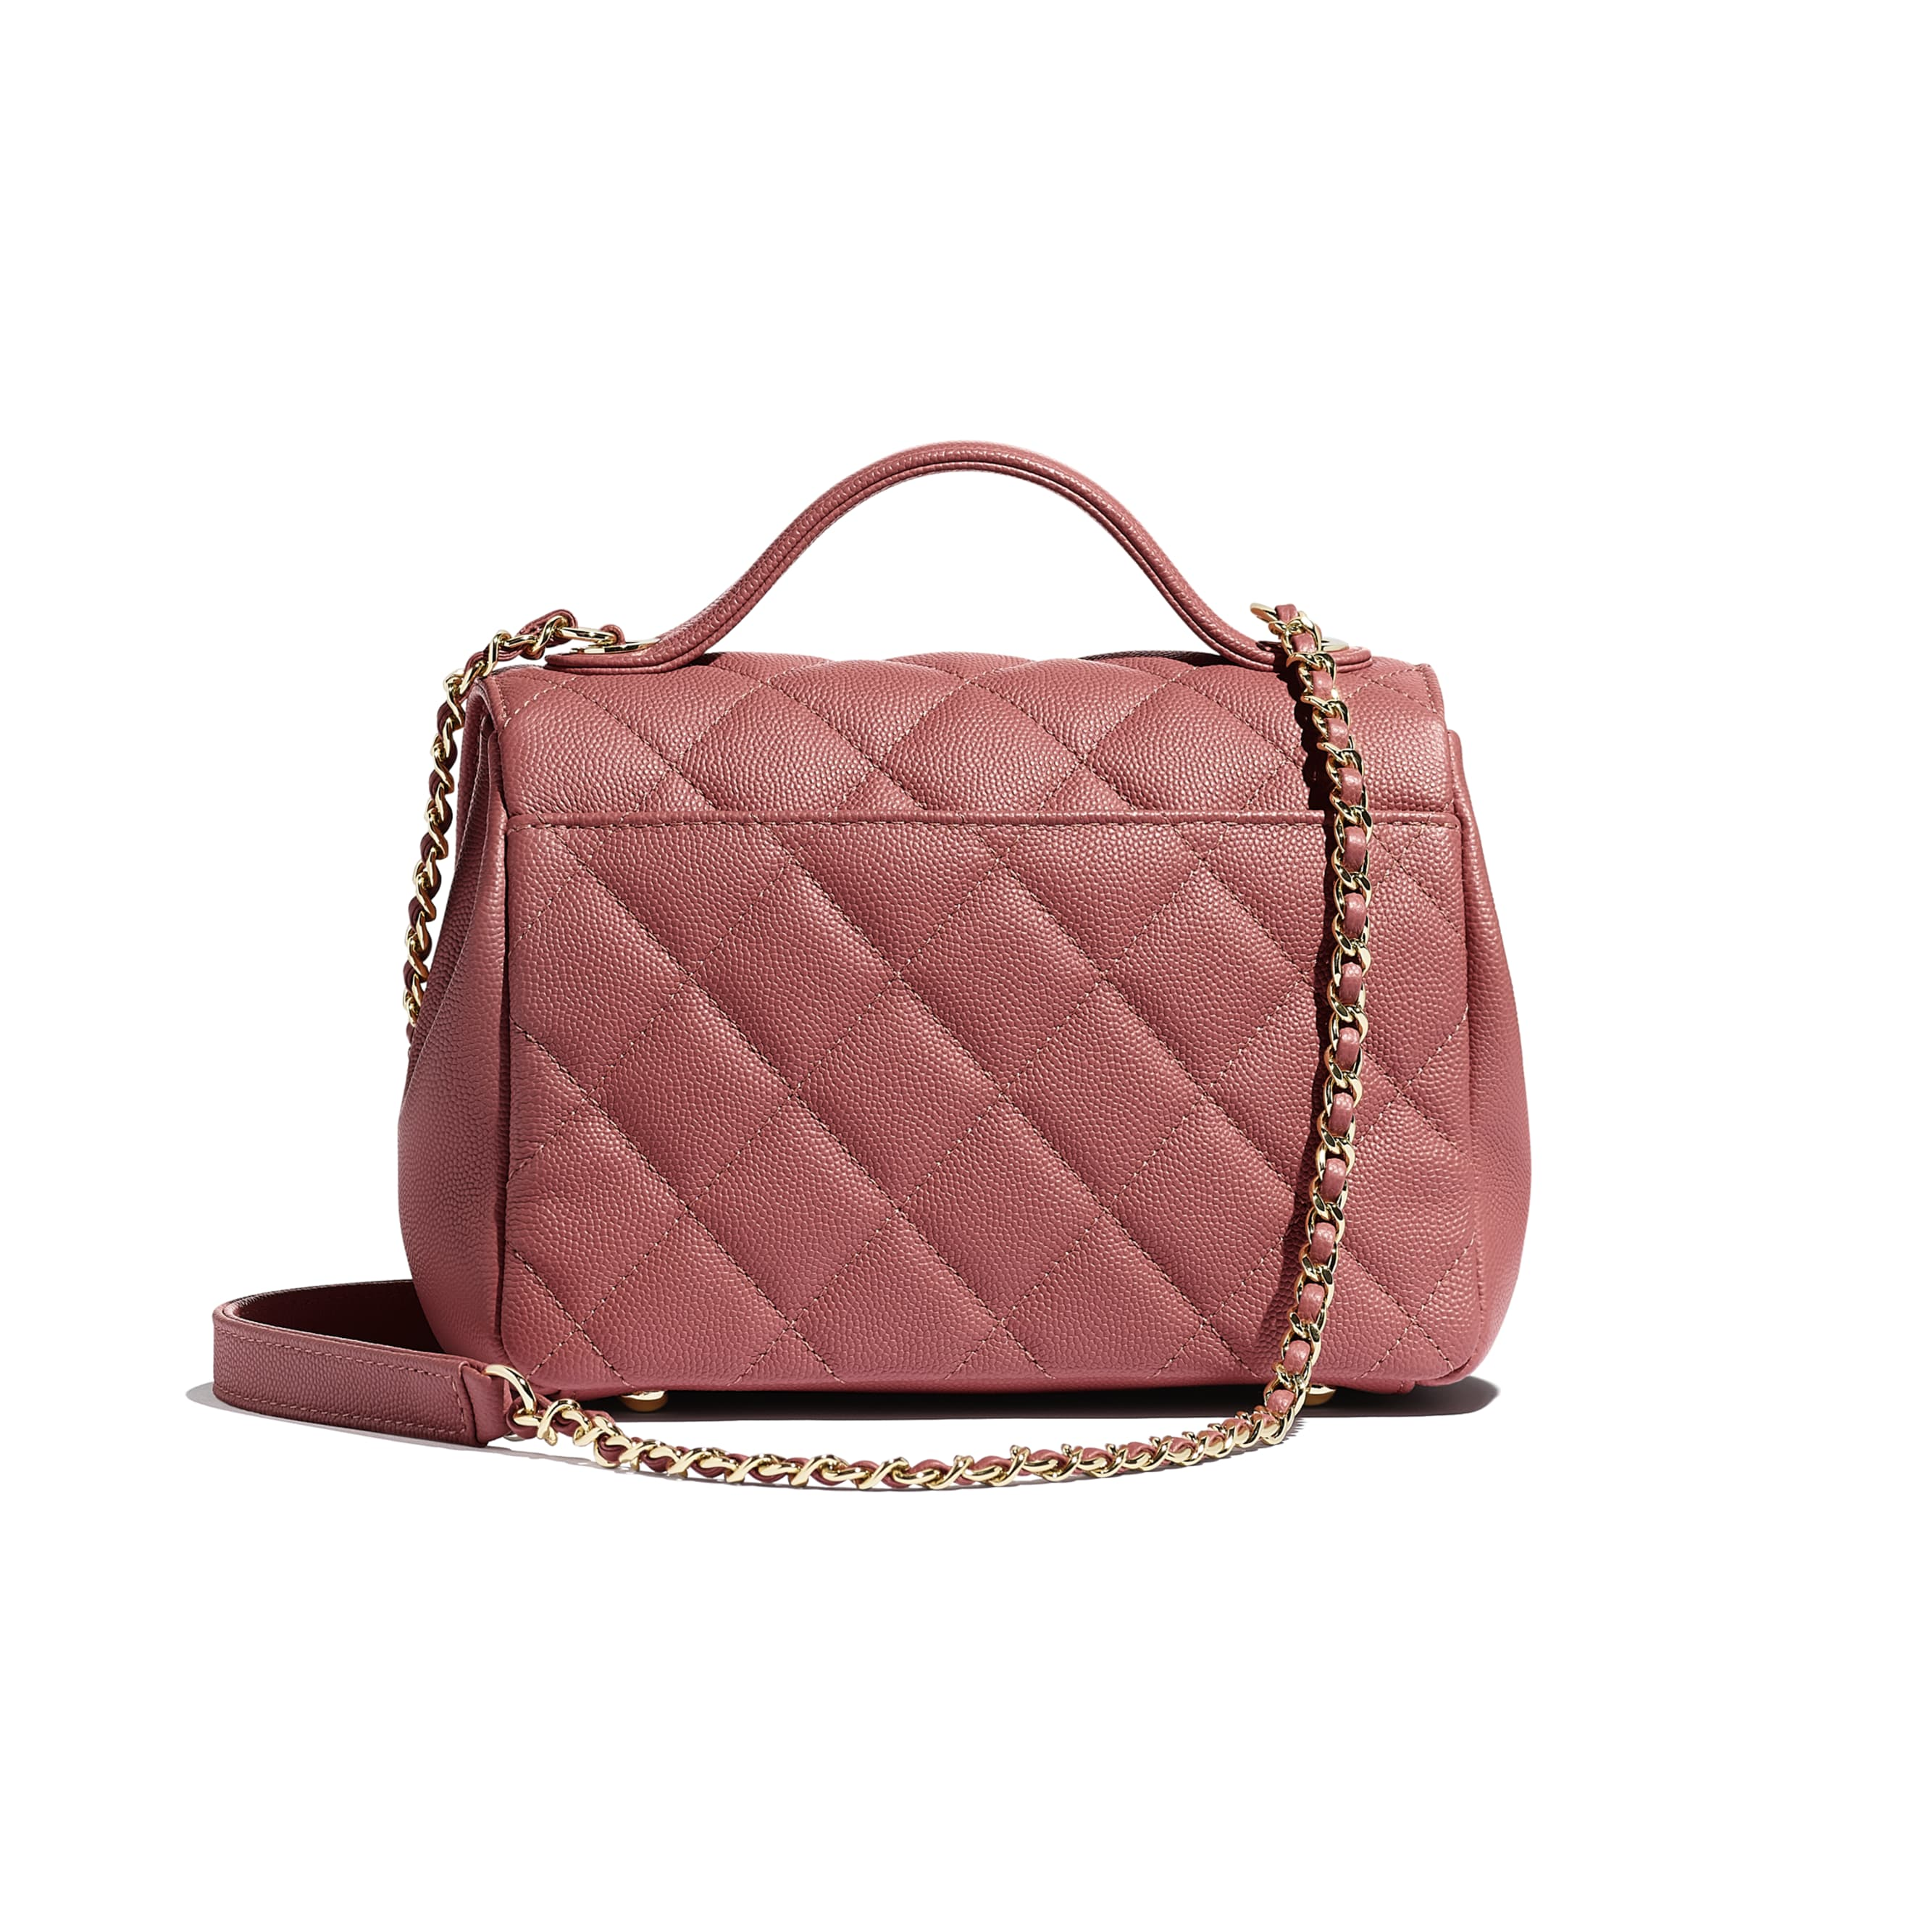 Flap Bag with Top Handle - Pink - Grained Calfskin & Gold-Tone Metal - Alternative view - see standard sized version